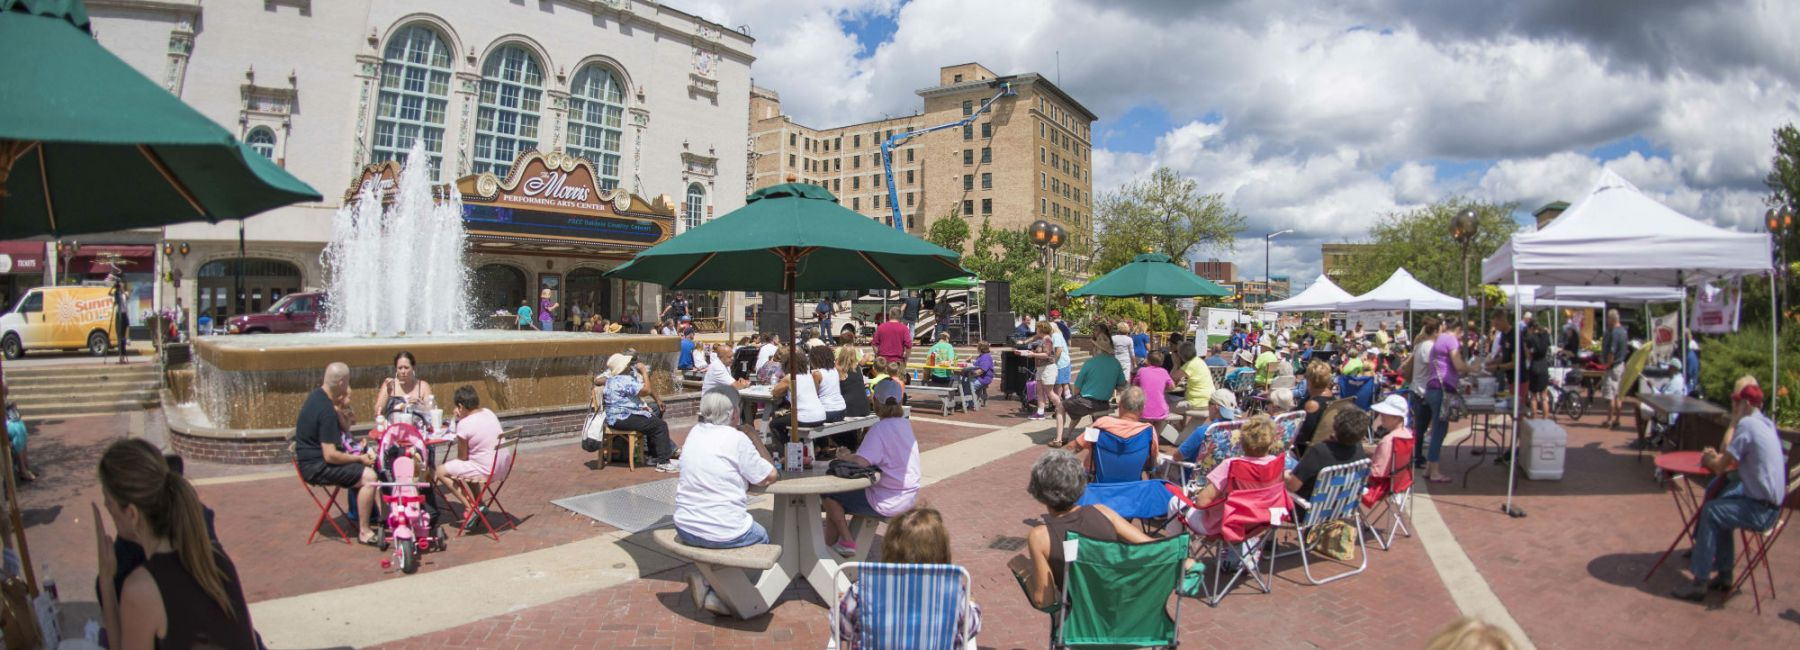 things to do in south bend mishawaka nitdc